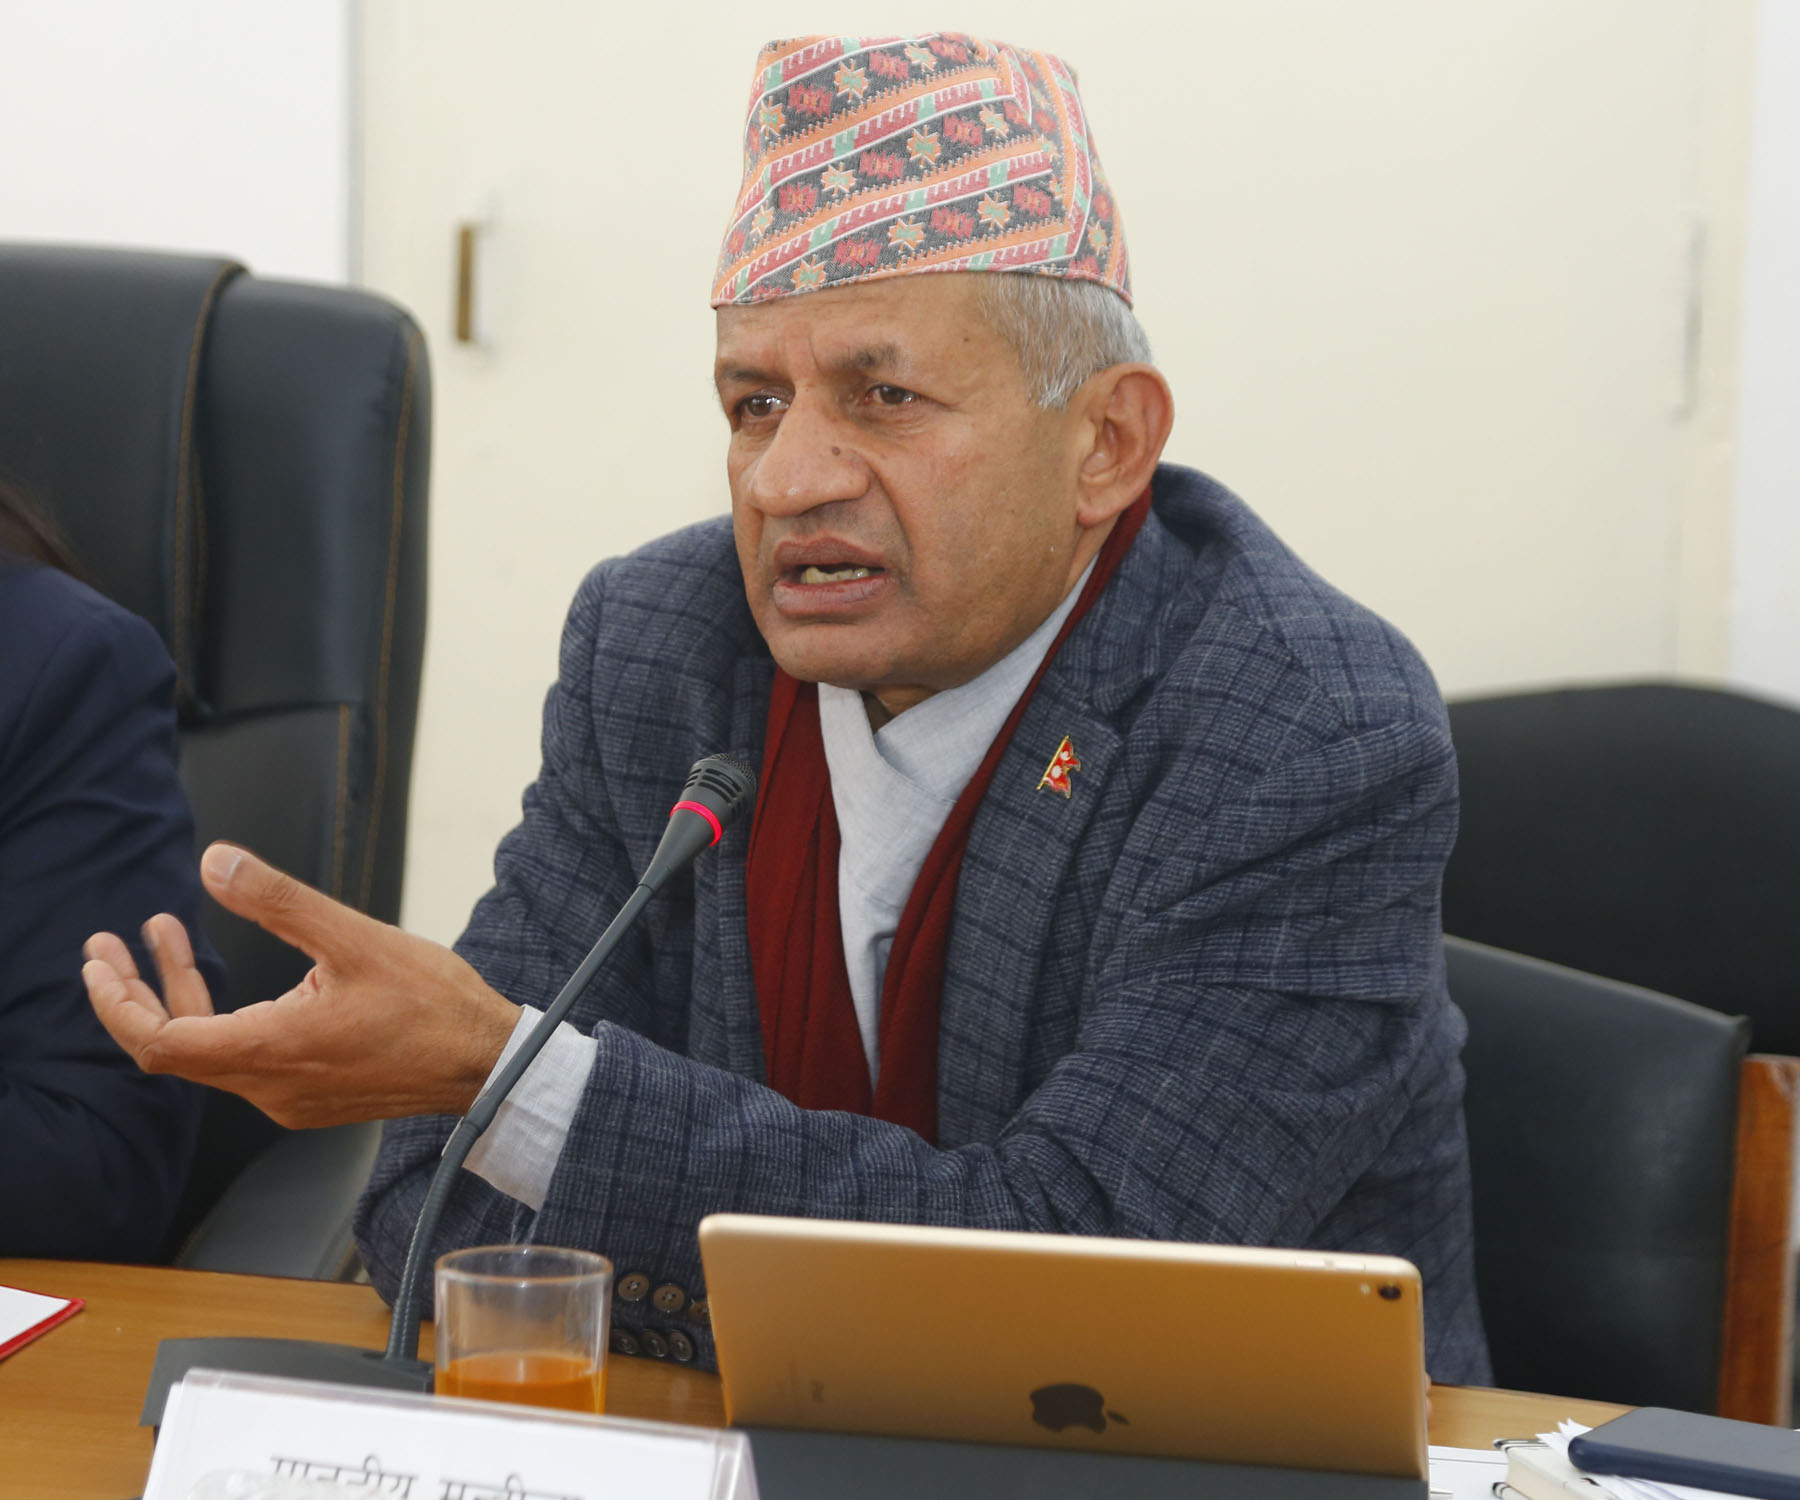 Nepal committed to ensuring full enjoyment of all human rights: Foreign Minister Gyawali